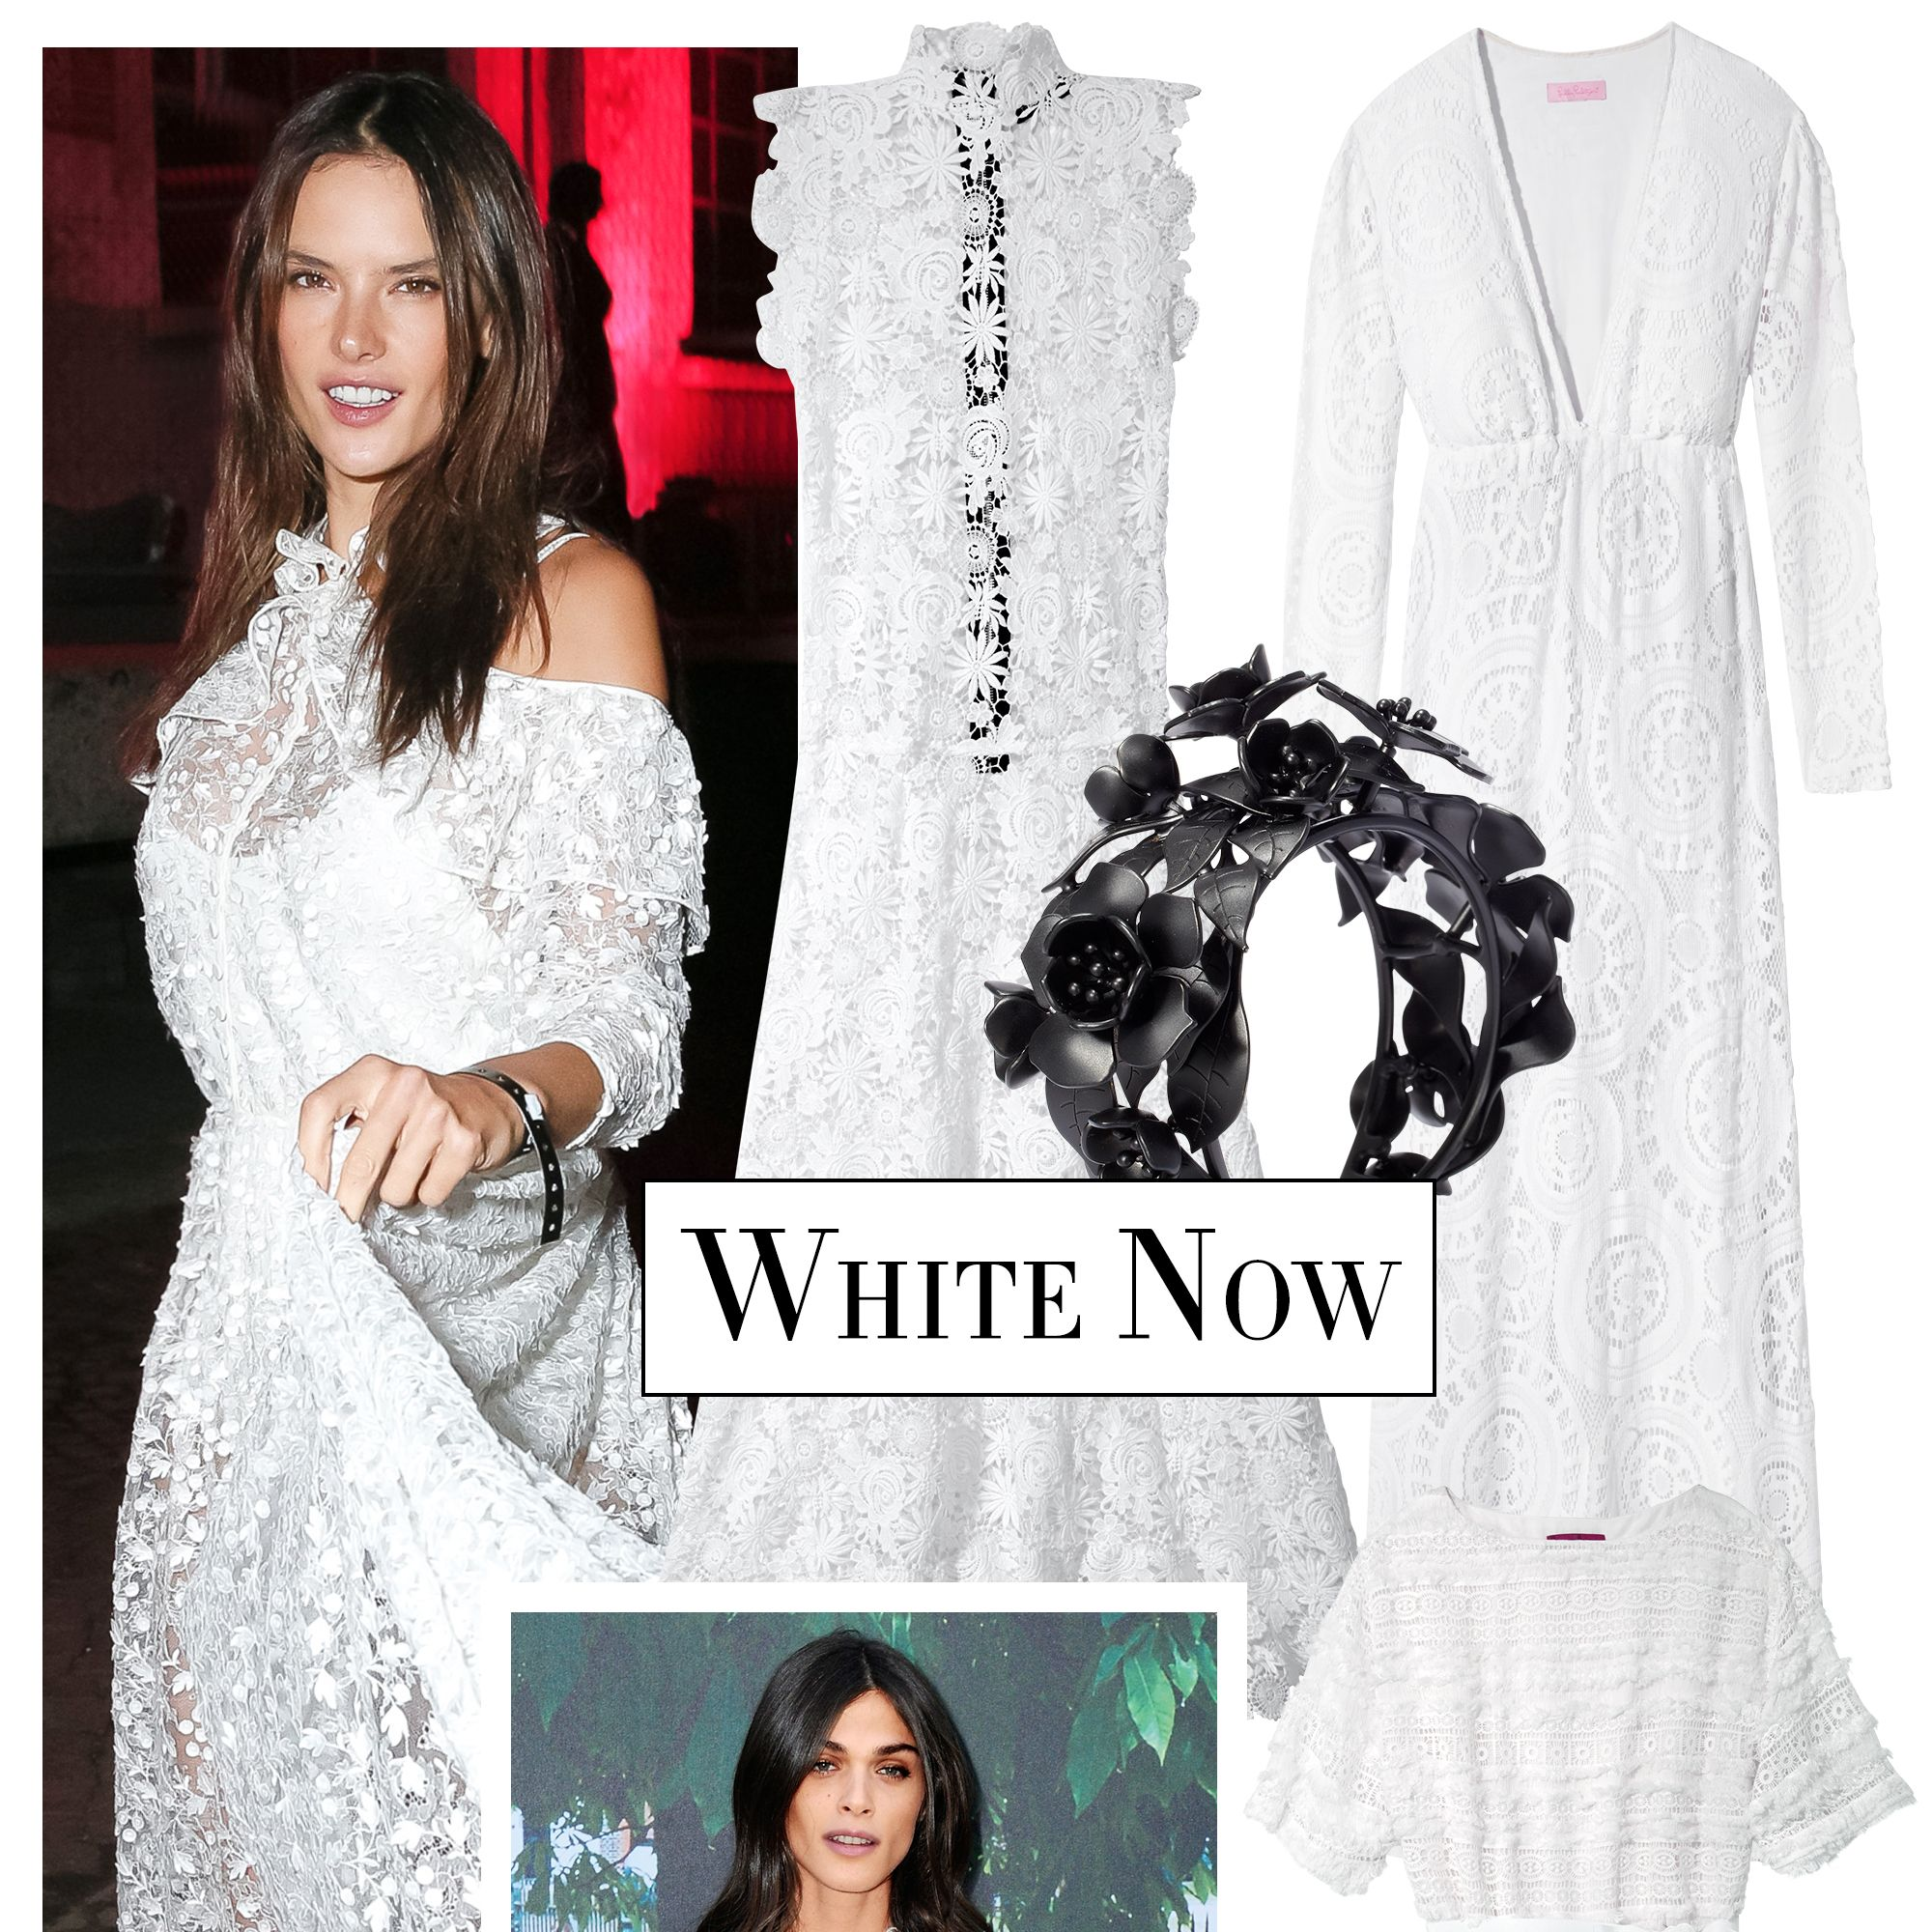 <p>A romantic white dress is the look of the season. Take your cue from model and actress Elisa Sednaoui and balance an embroidered version with a striking noir-accented accessory.